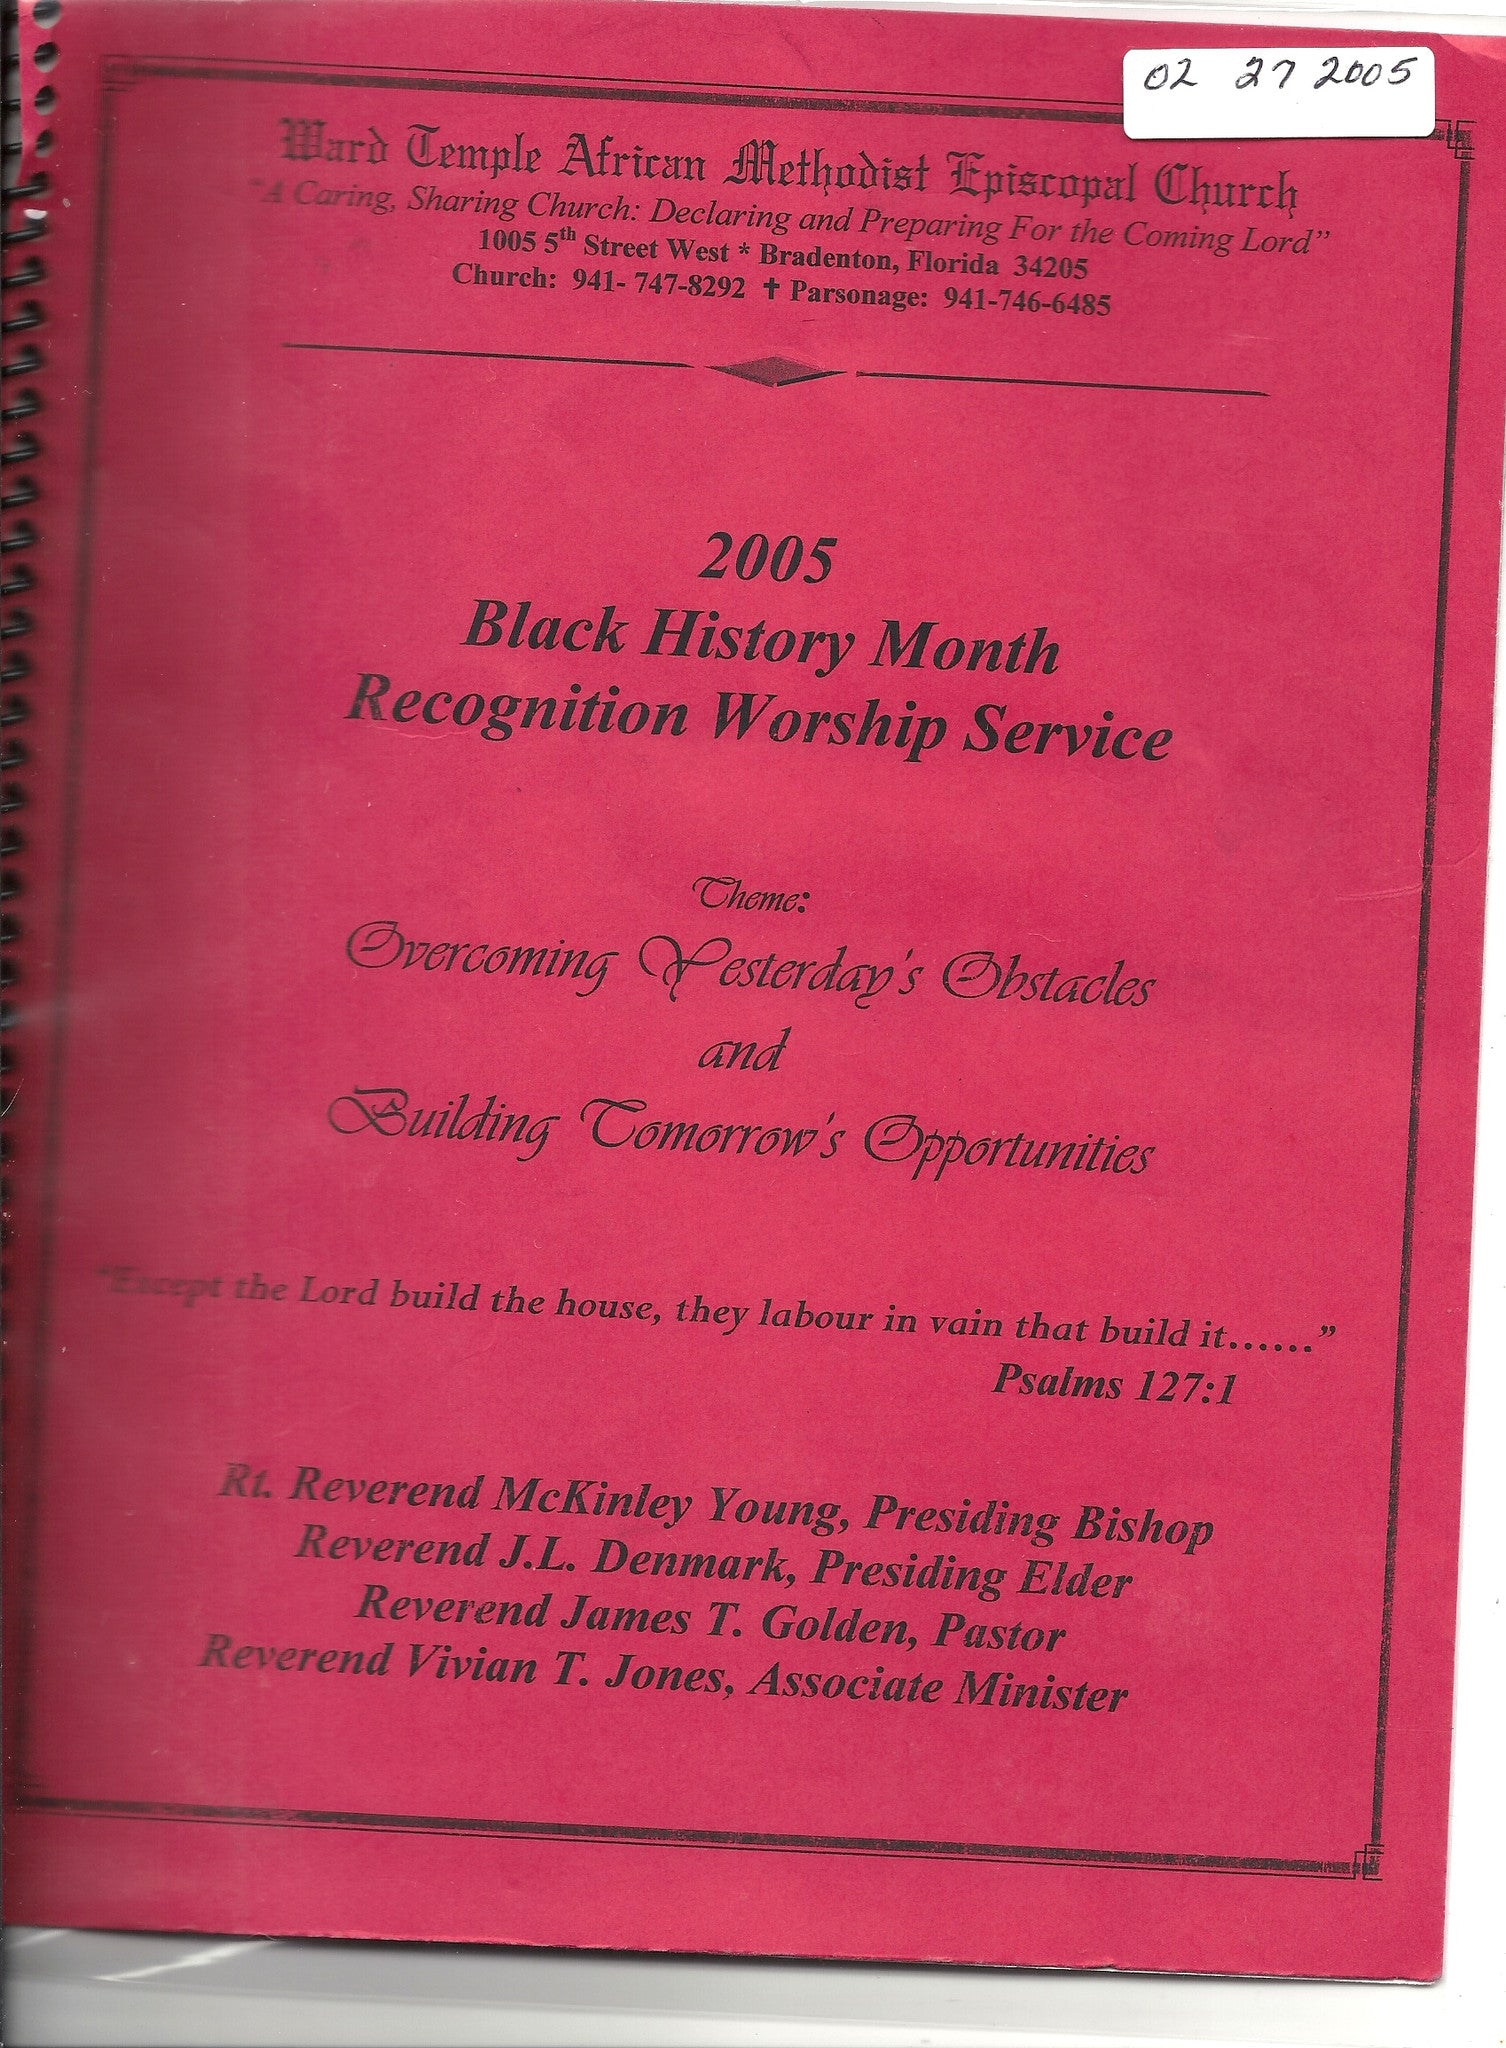 02 27 2005 Ward Temple AME